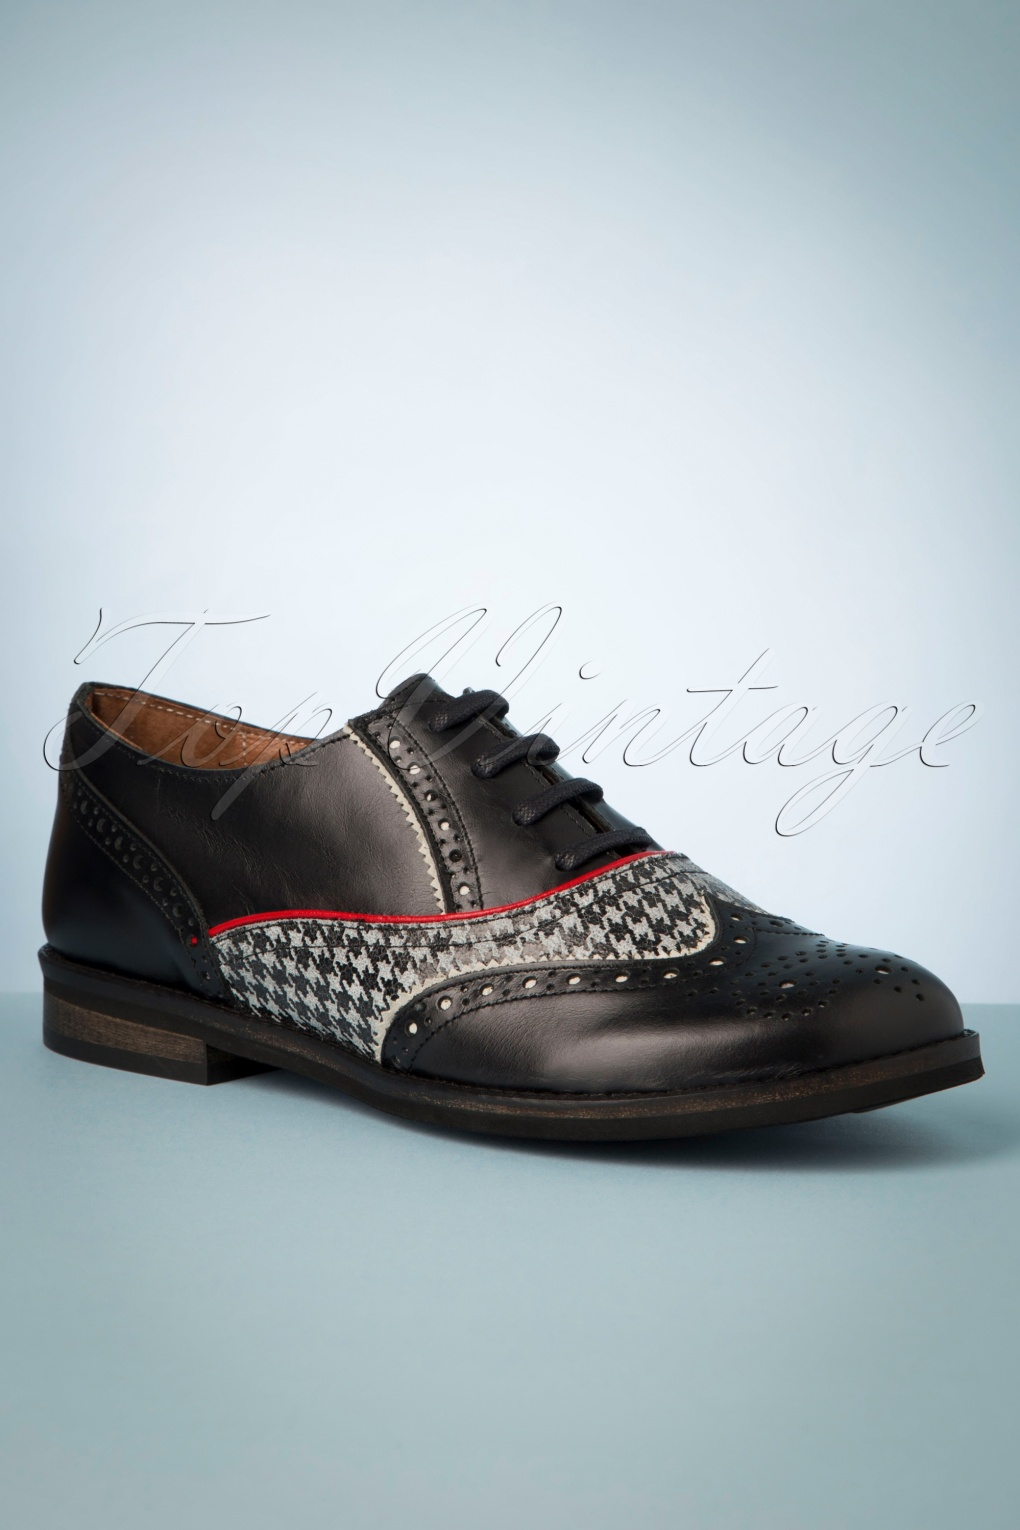 60s Shoes, Boots | 70s Shoes, Platforms, Boots 60s Madison Oxford Shoes in Black £109.19 AT vintagedancer.com